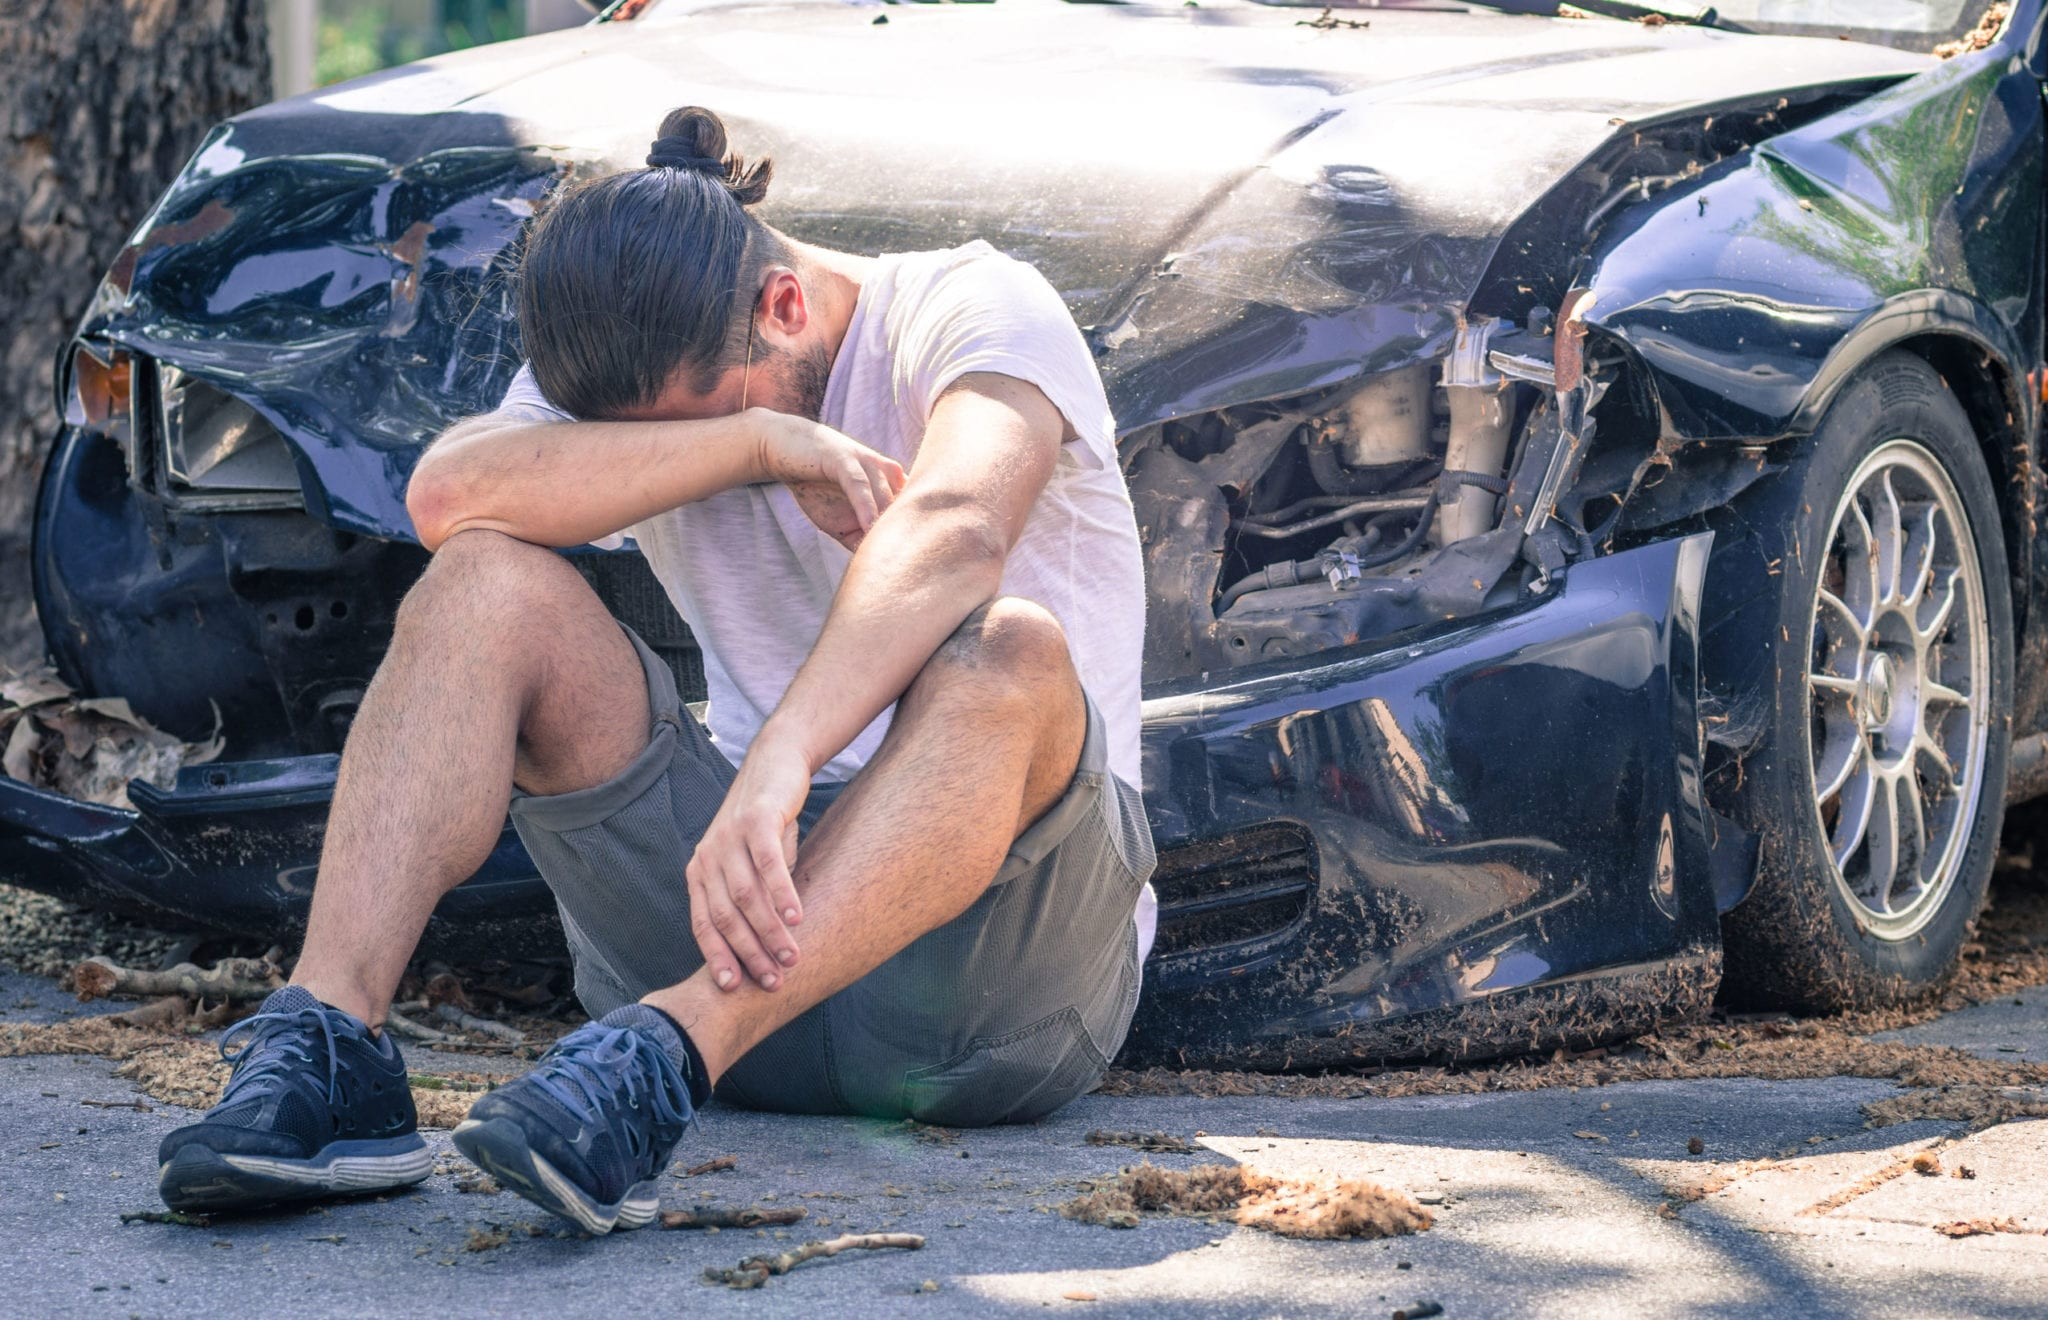 Texas Auto Injury Liability: The Elements That Need to Be Proven